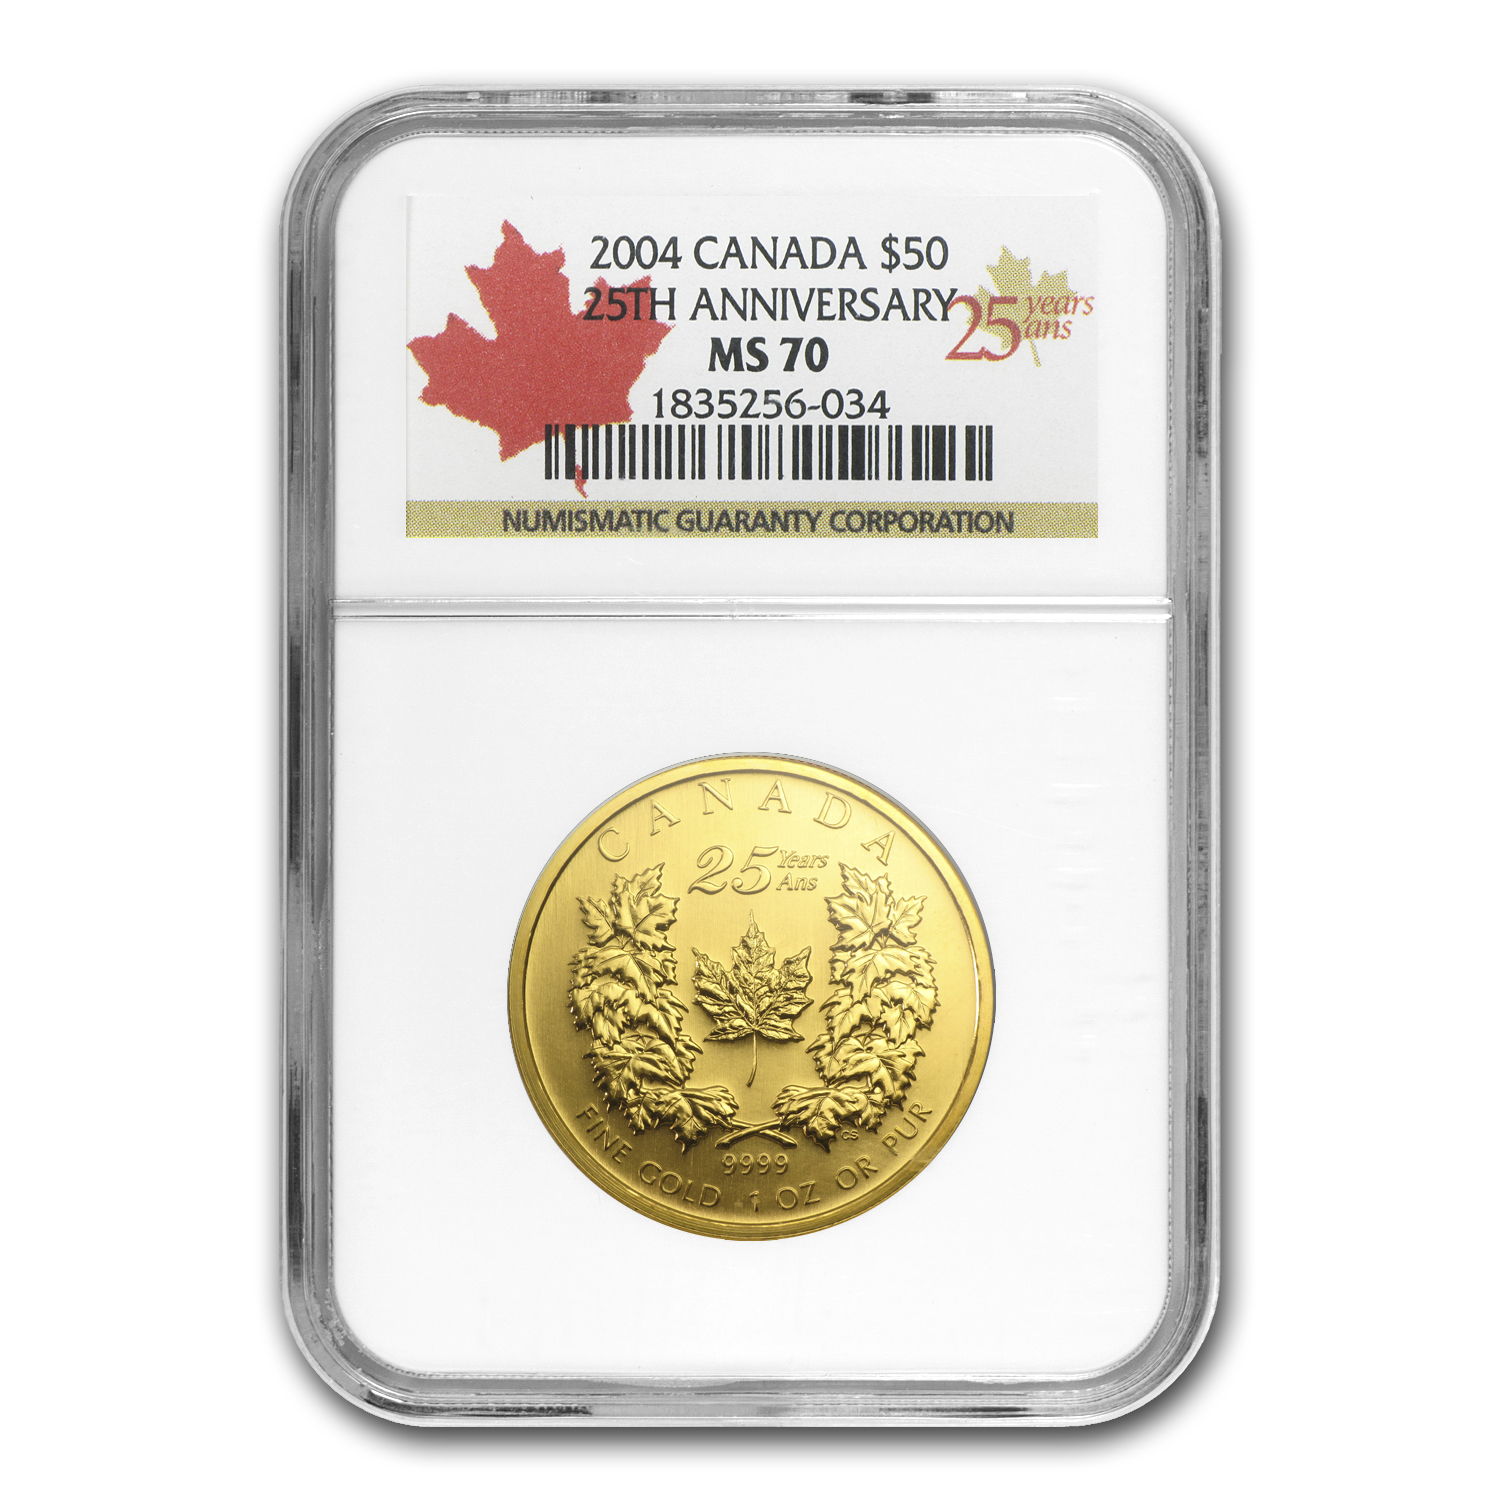 2004 Canada 1 oz Gold Maple Leaf MS-70 NGC (25th Anniv)